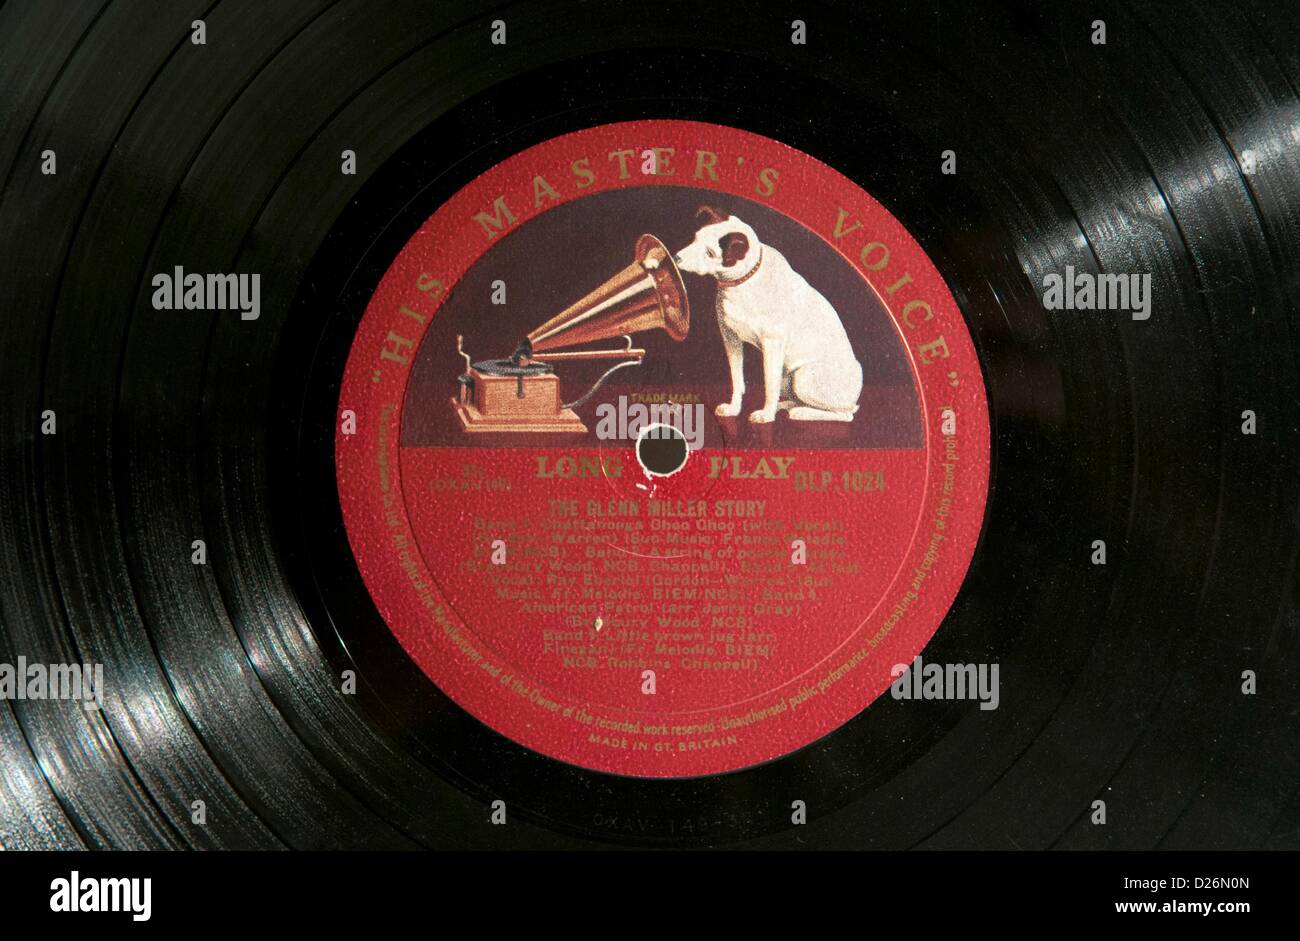 Hmv Logo Stock Photos Hmv Logo Stock Images Alamy